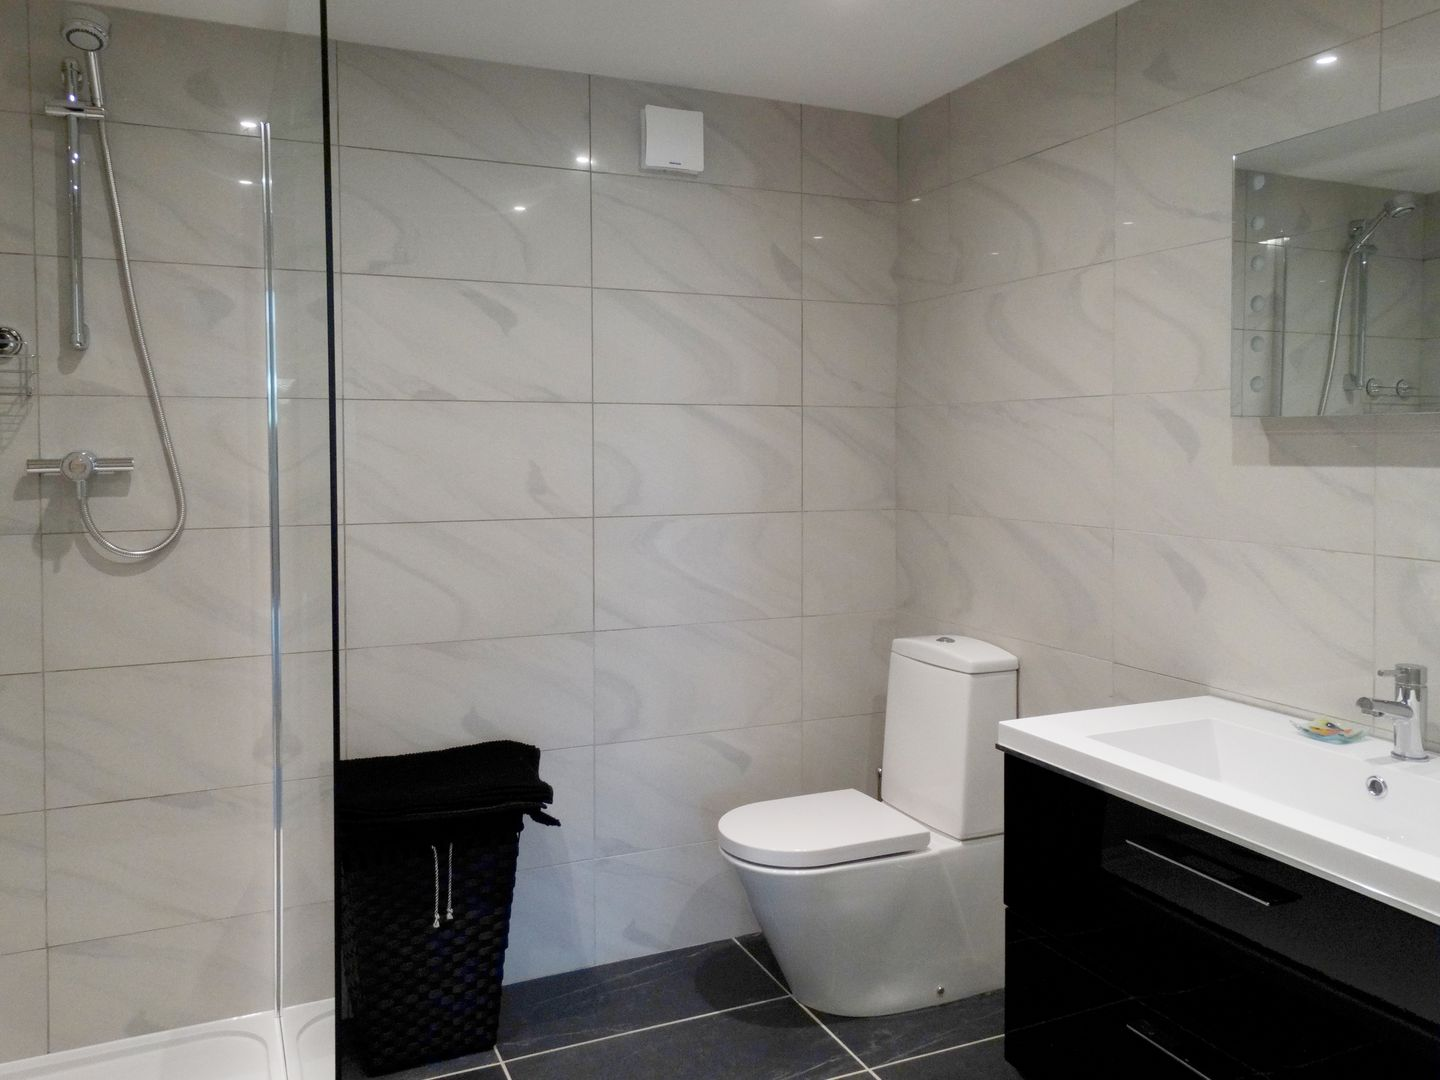 Pippin Charmouth Luxury Bathroom